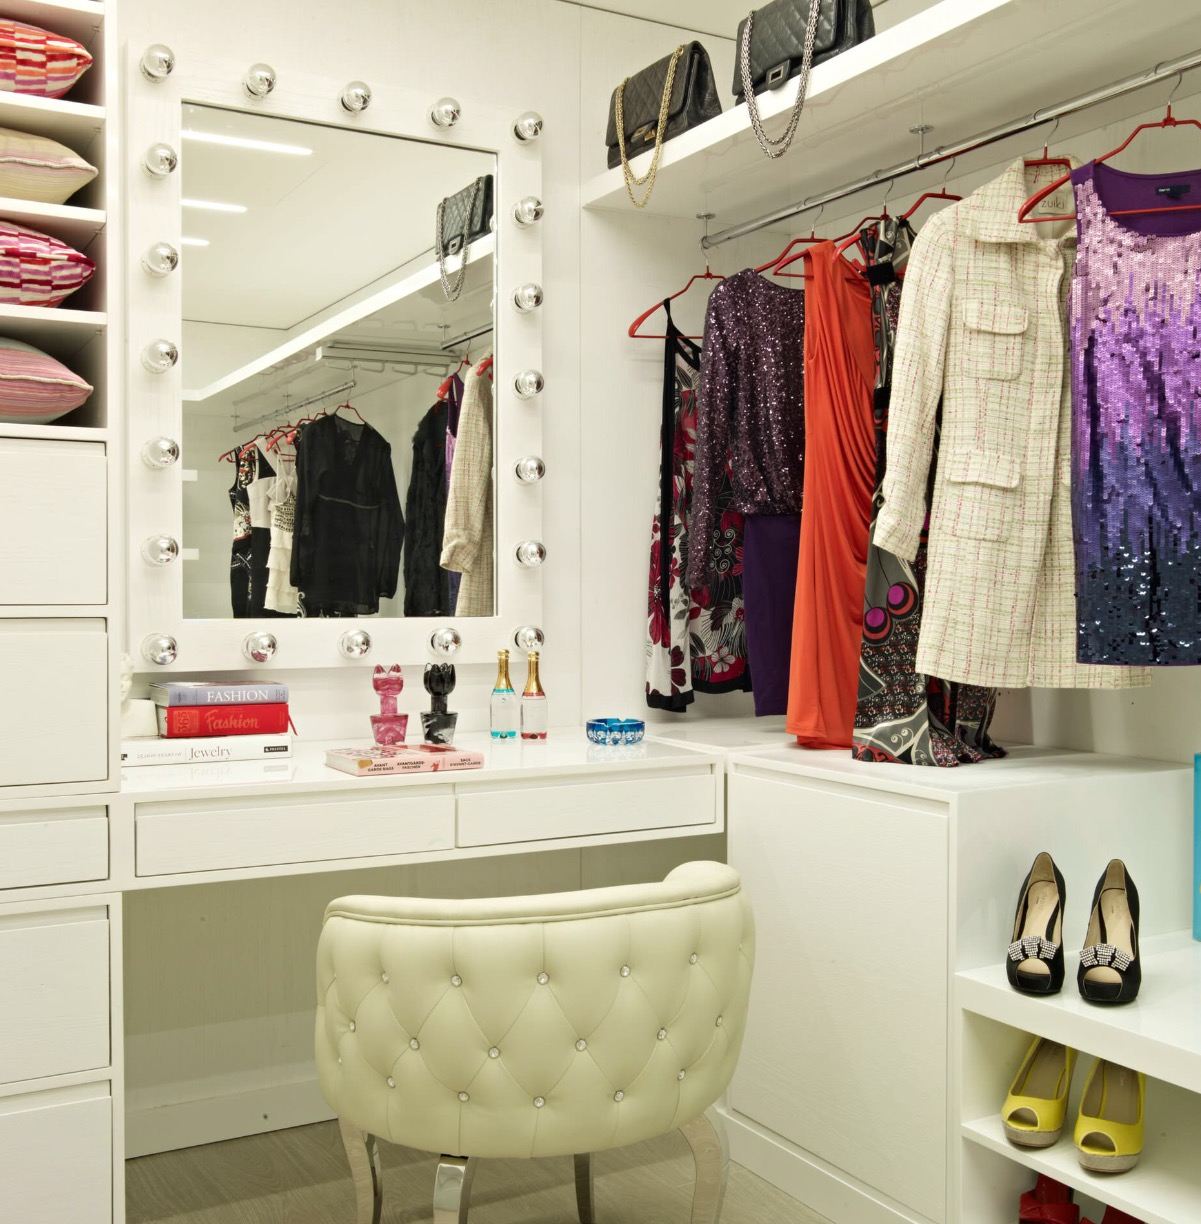 We Turned The Small Closet Located Up The Little Stairs In Her Room Into A  Dressing/vanity Area. I Found The Photo Below On Pinterest To Use For  Inspiration ...